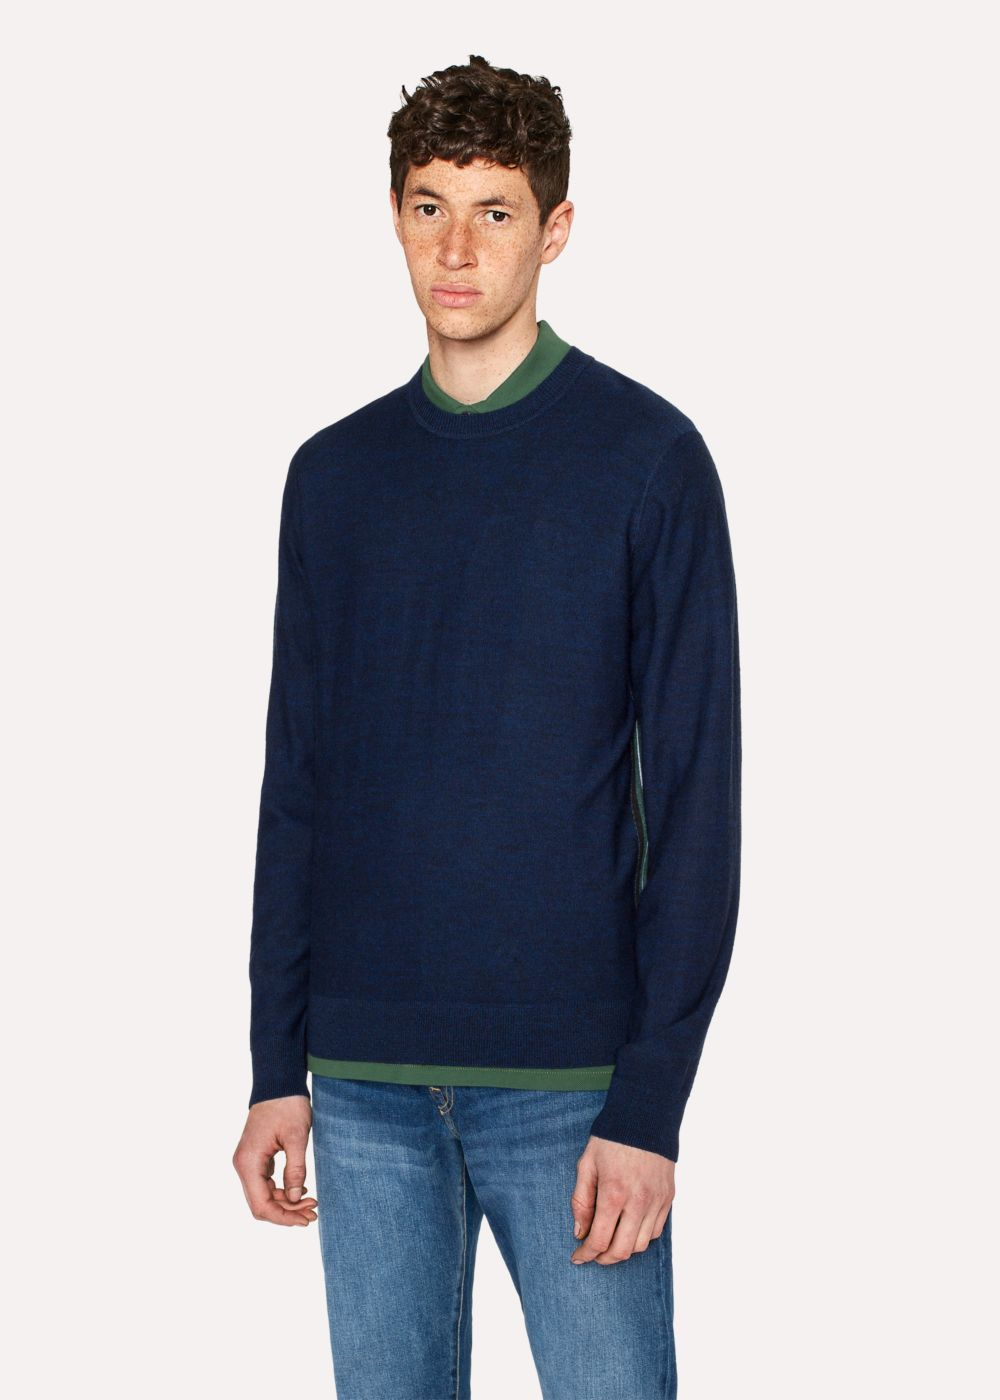 Paul Smith Men's Navy Wool Sweater With Side Stripes